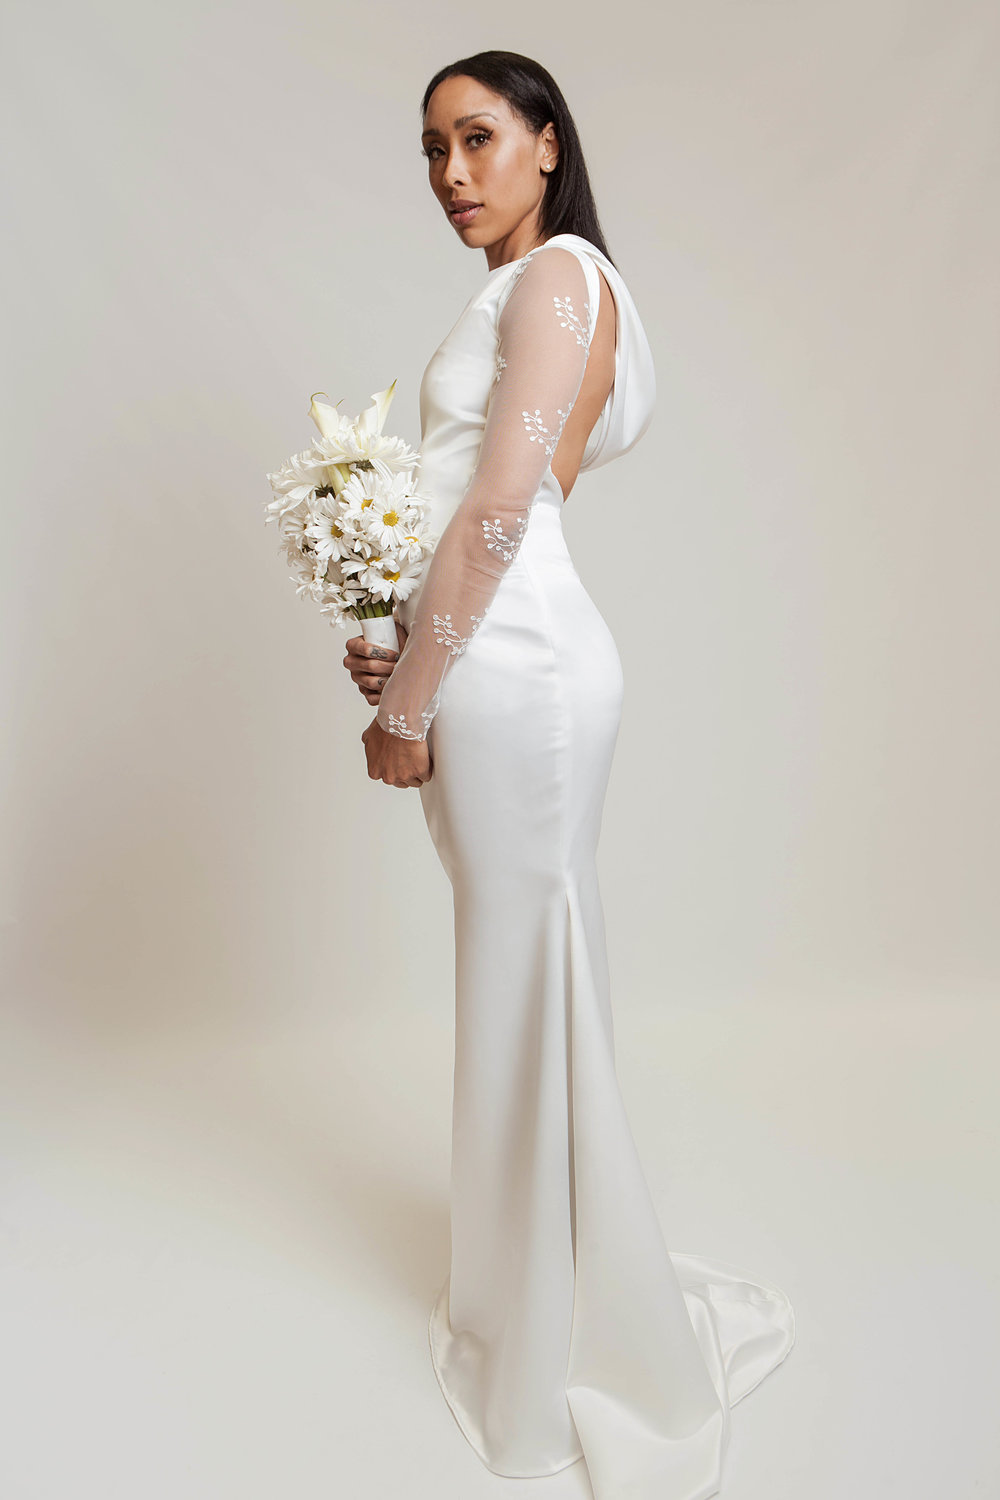 Mermaid style gown in a pearl white satin twill, stretch lace mesh sleeves, bias cut cowl neckline, and open back detail.